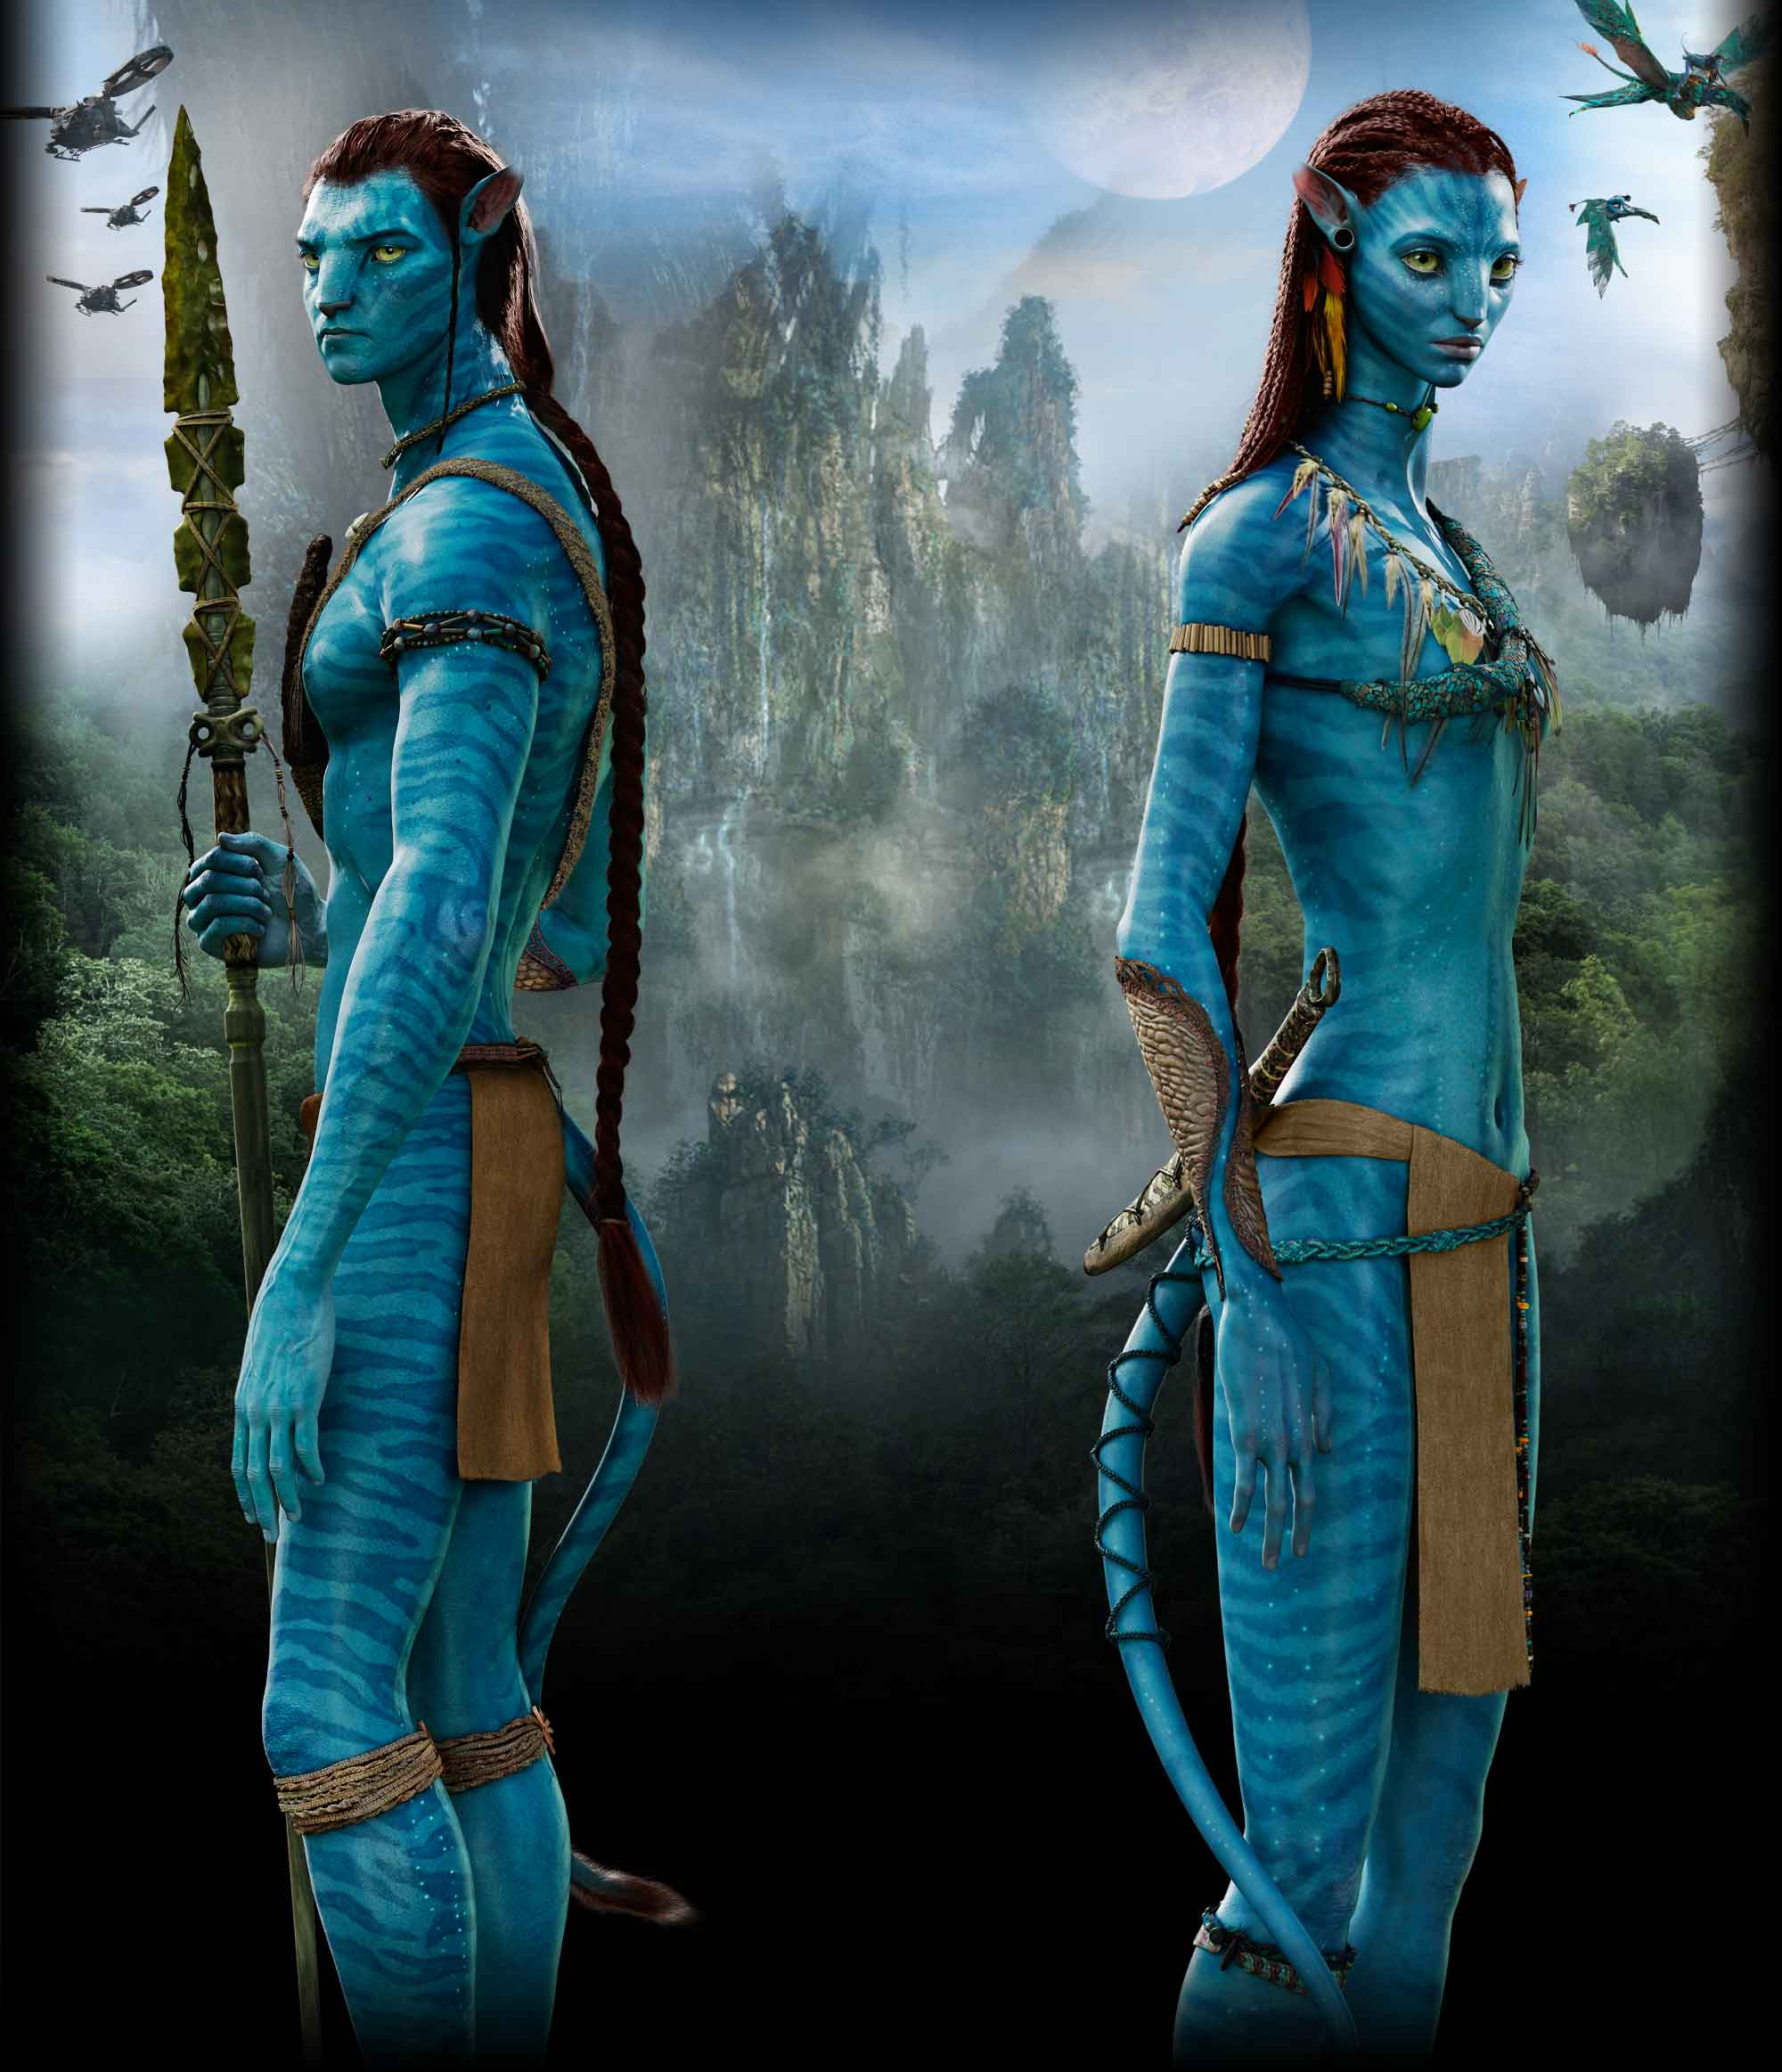 Avatar Jake: Jakesully And Neytiri By Dixetia.jpg